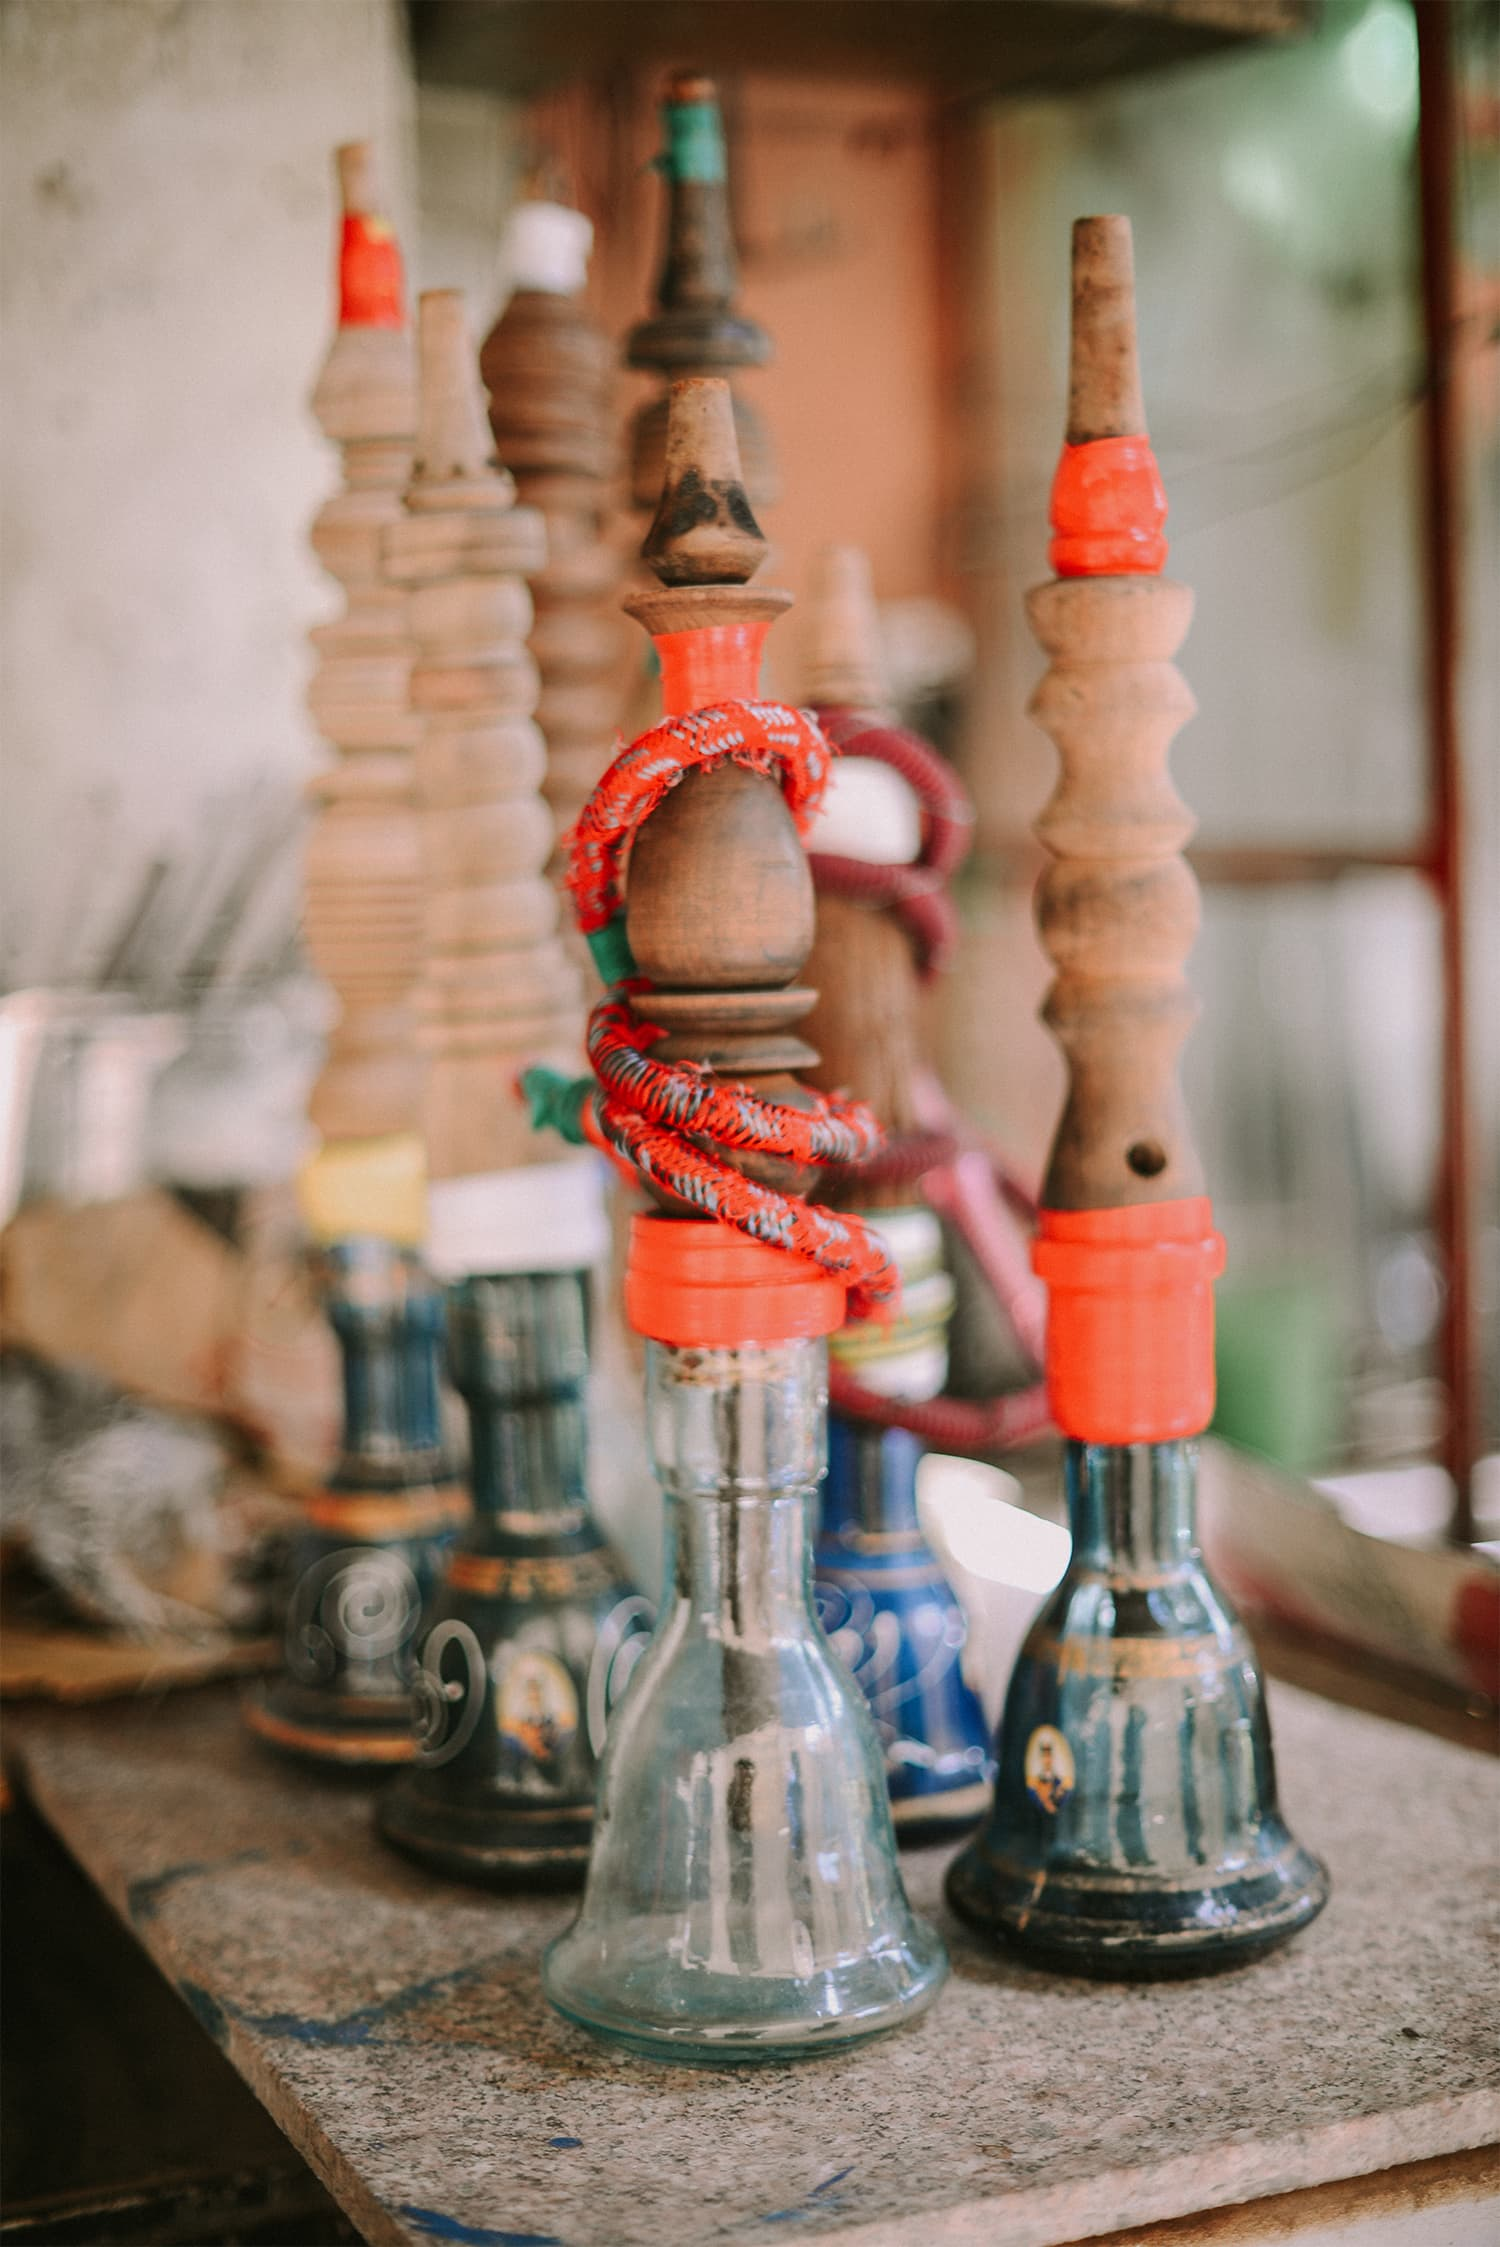 Sheesha joints are very common across cities in Southern Iraq.